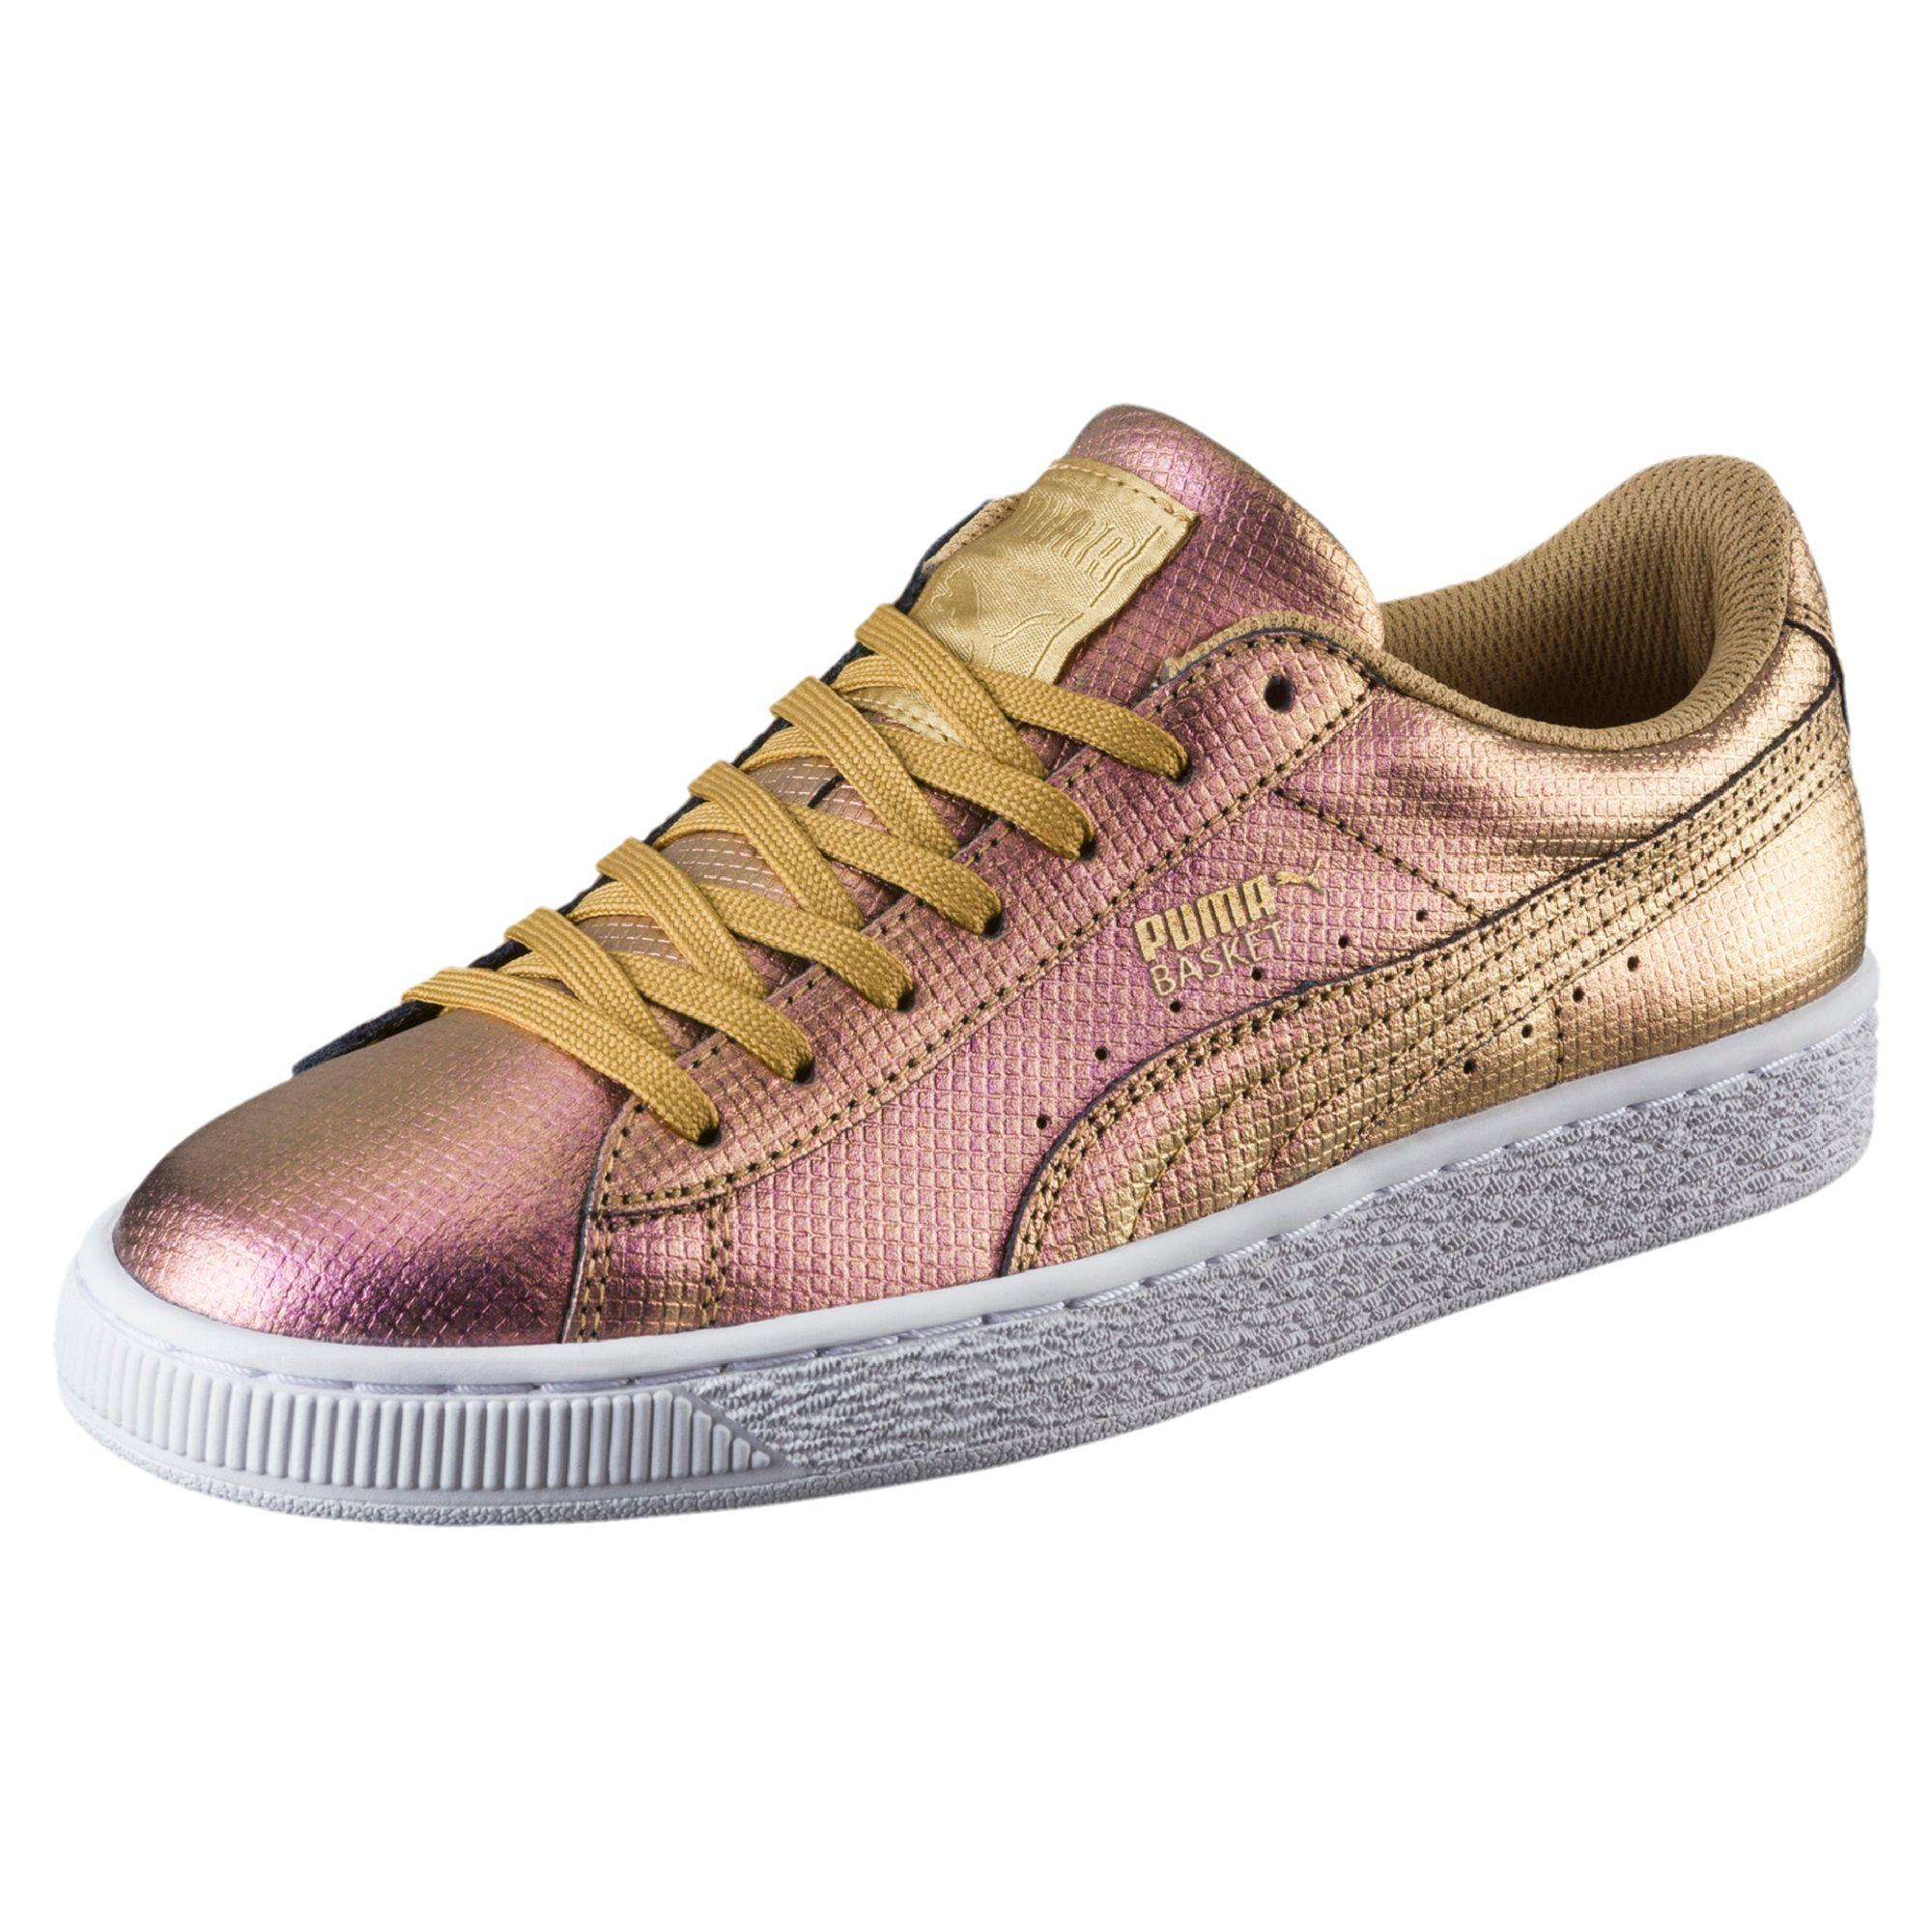 44d24ef836e Lyst - PUMA Basket Holographic Women s Sneakers in Metallic